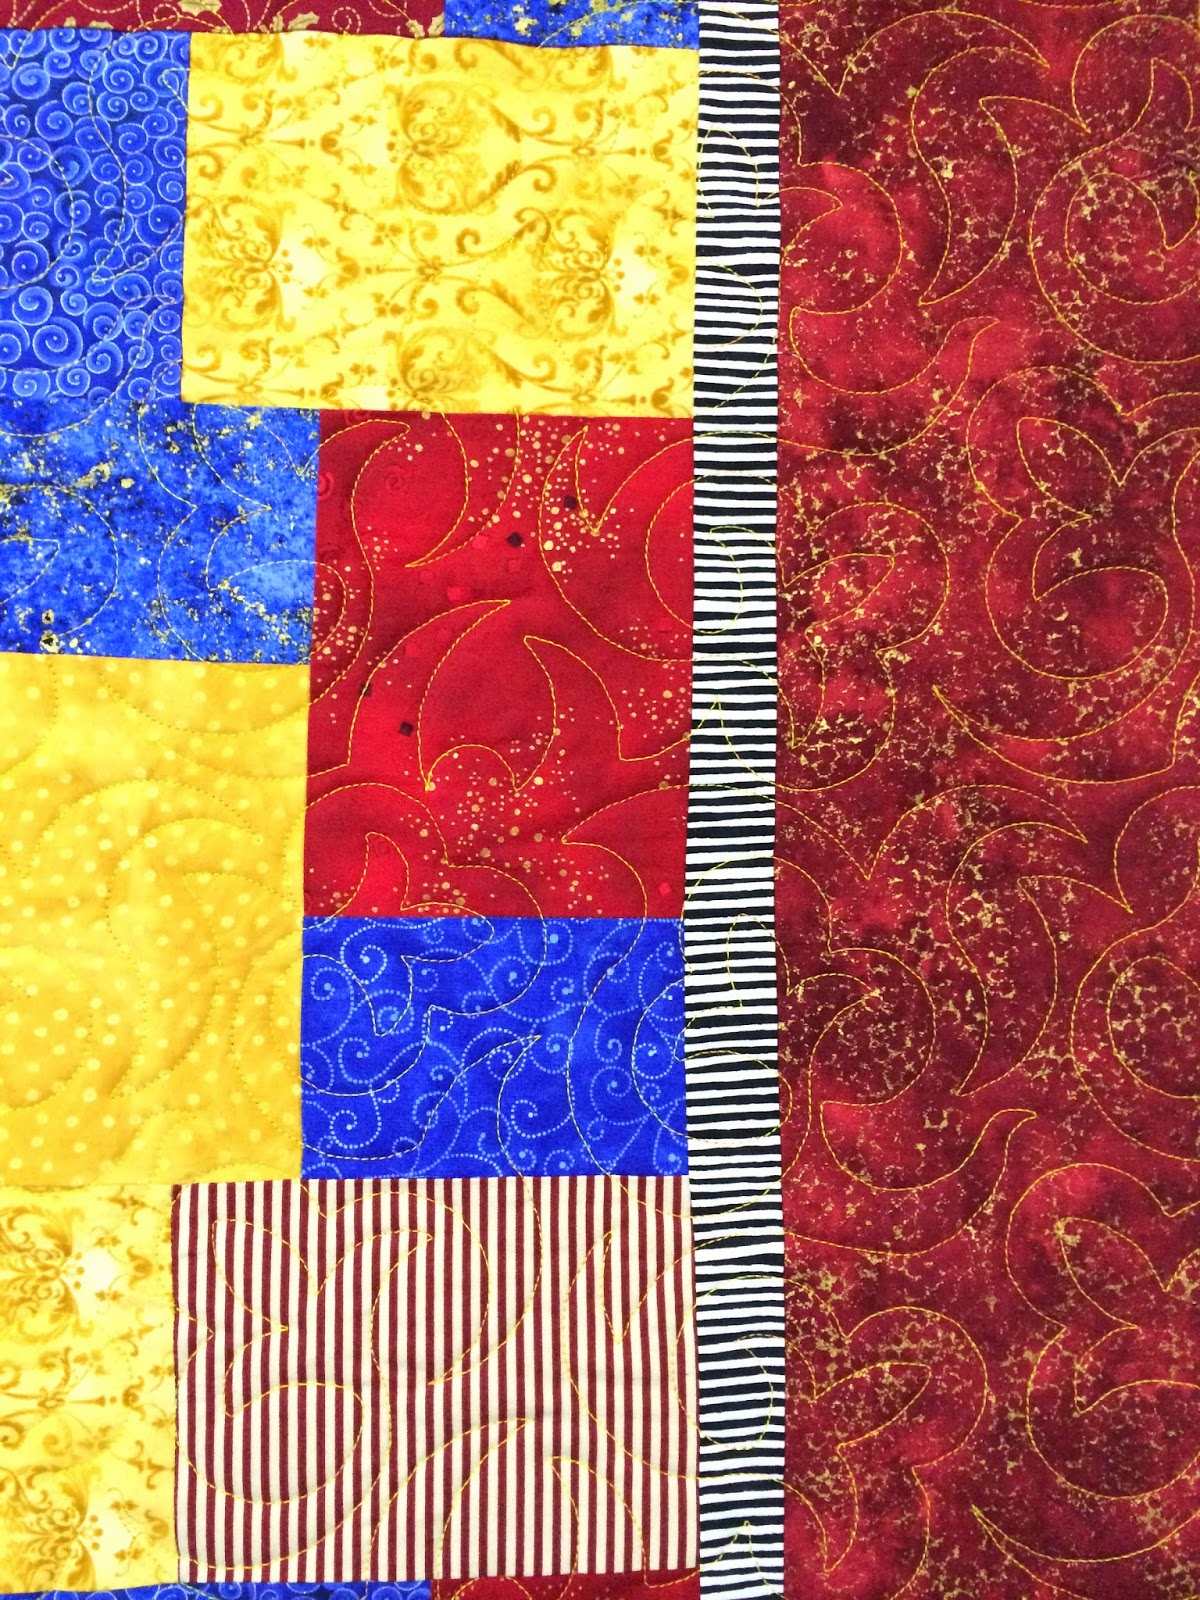 Delia Romero's Multi-Color Quilt